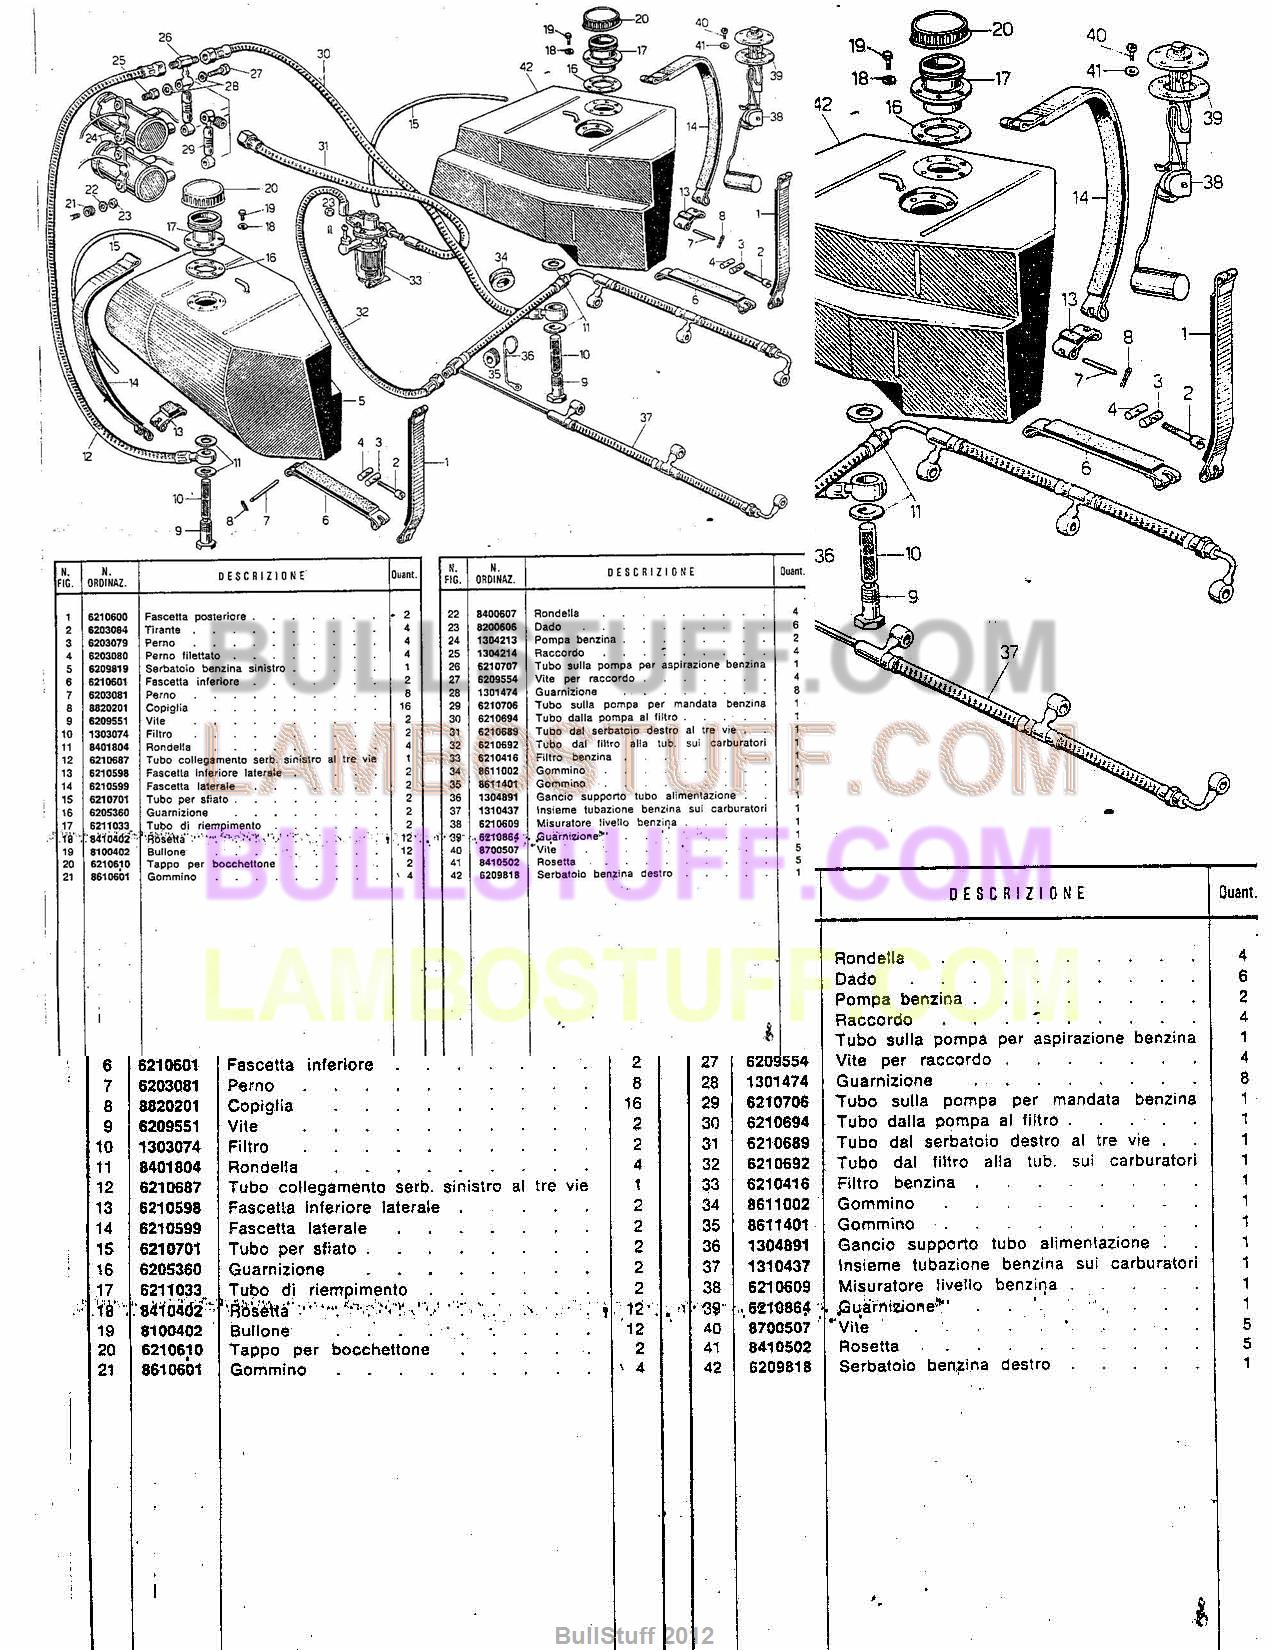 1974 - 1978 Lamborghini Countach LP400 USA Fuel system (28)